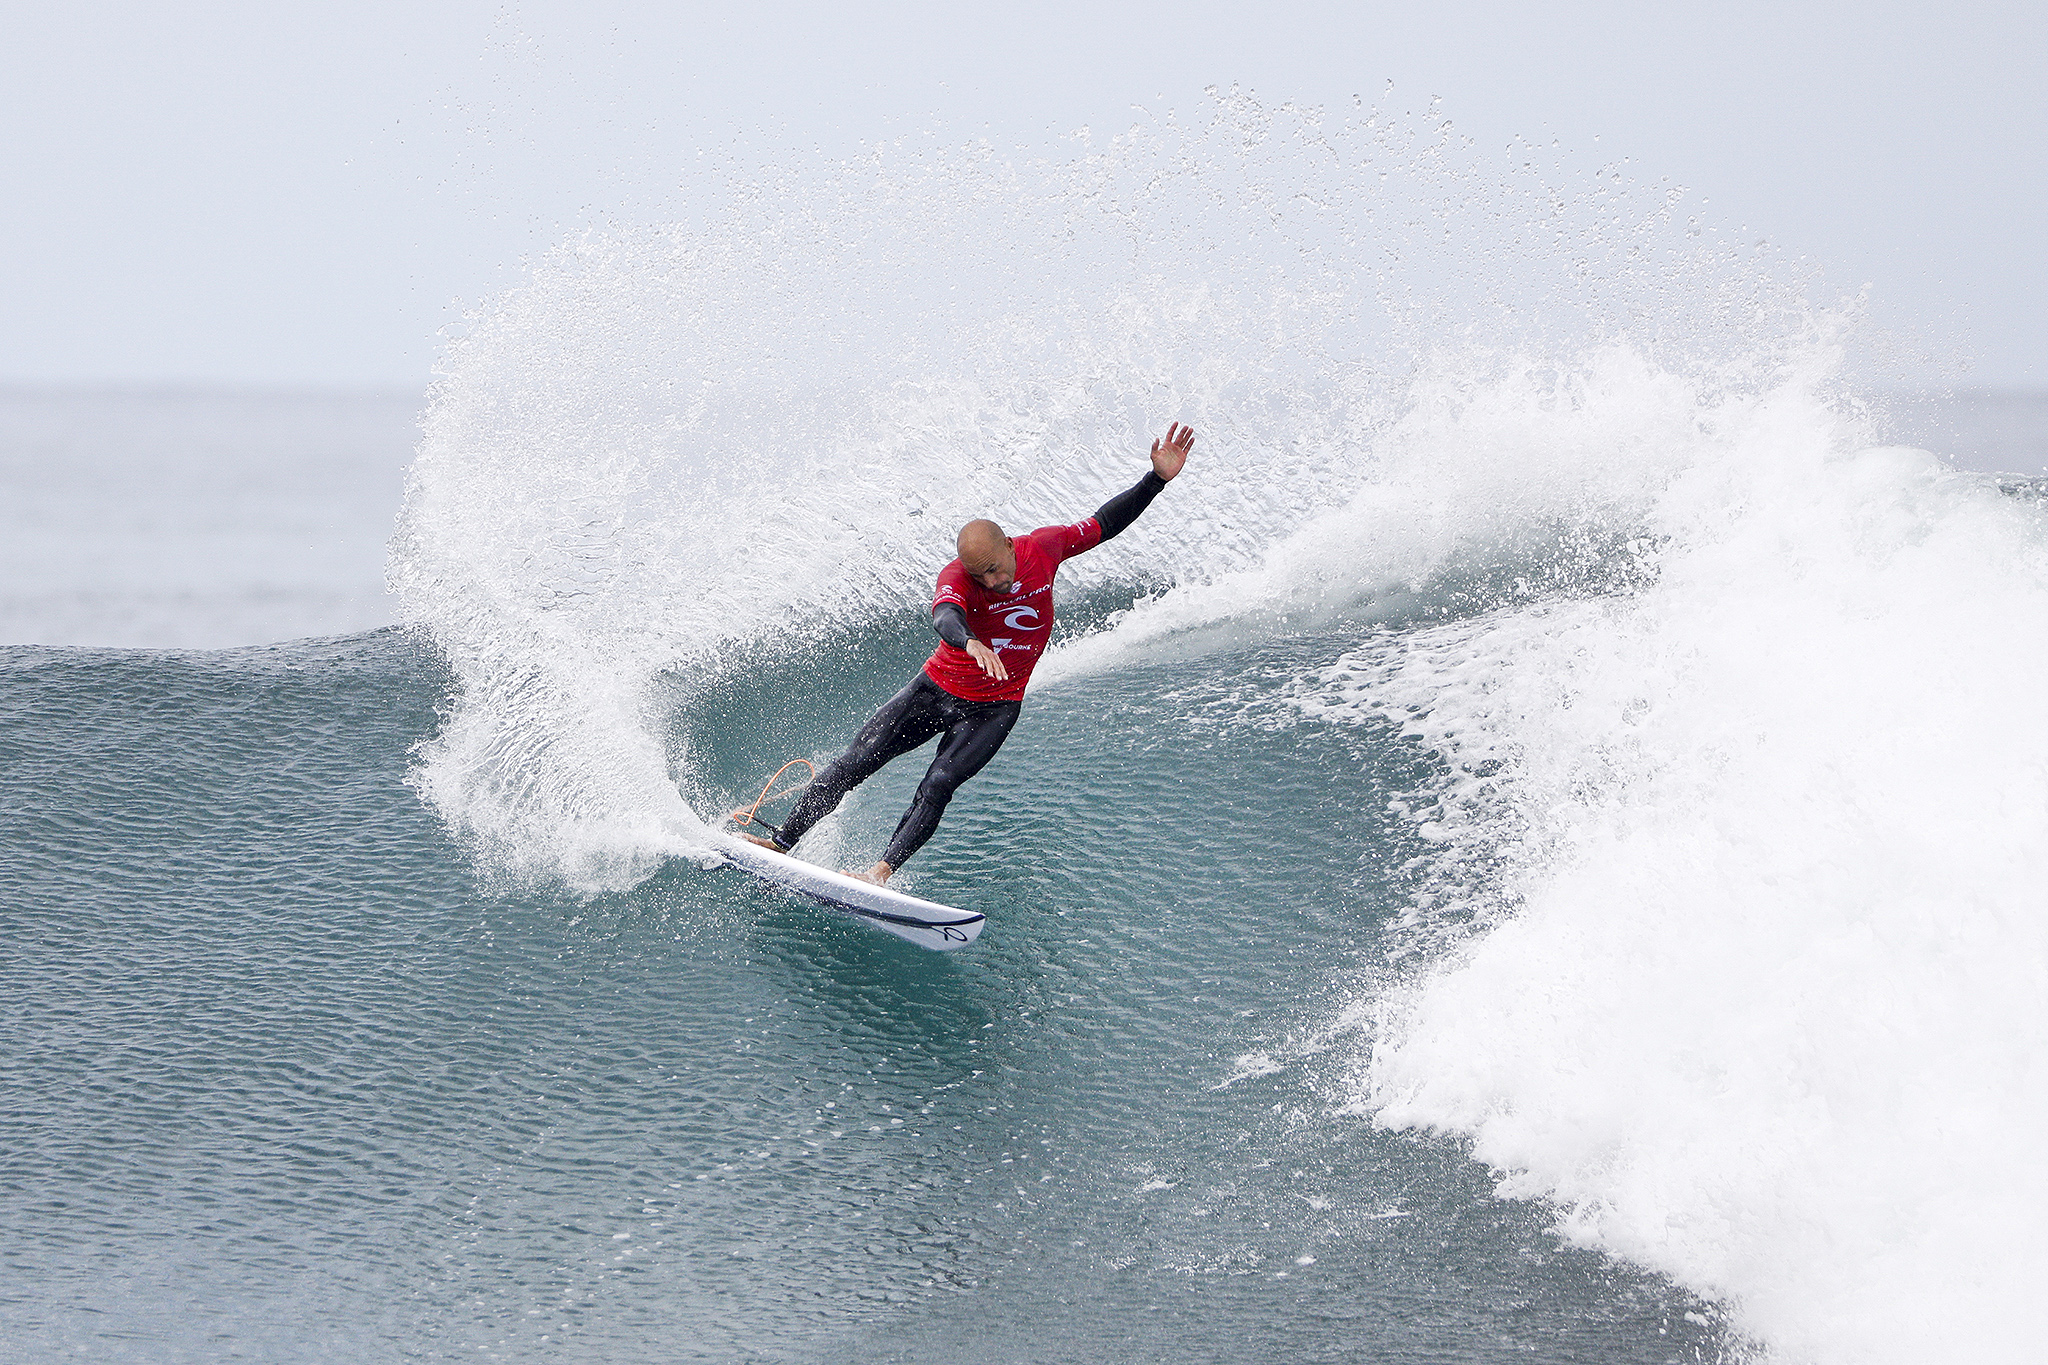 11X World Champion Kelly Slater of the USA advanced directly to Round Three after winning Heat 8 of Round One at the Rip Curl Pro Bells Beach after moving to Winkipop.